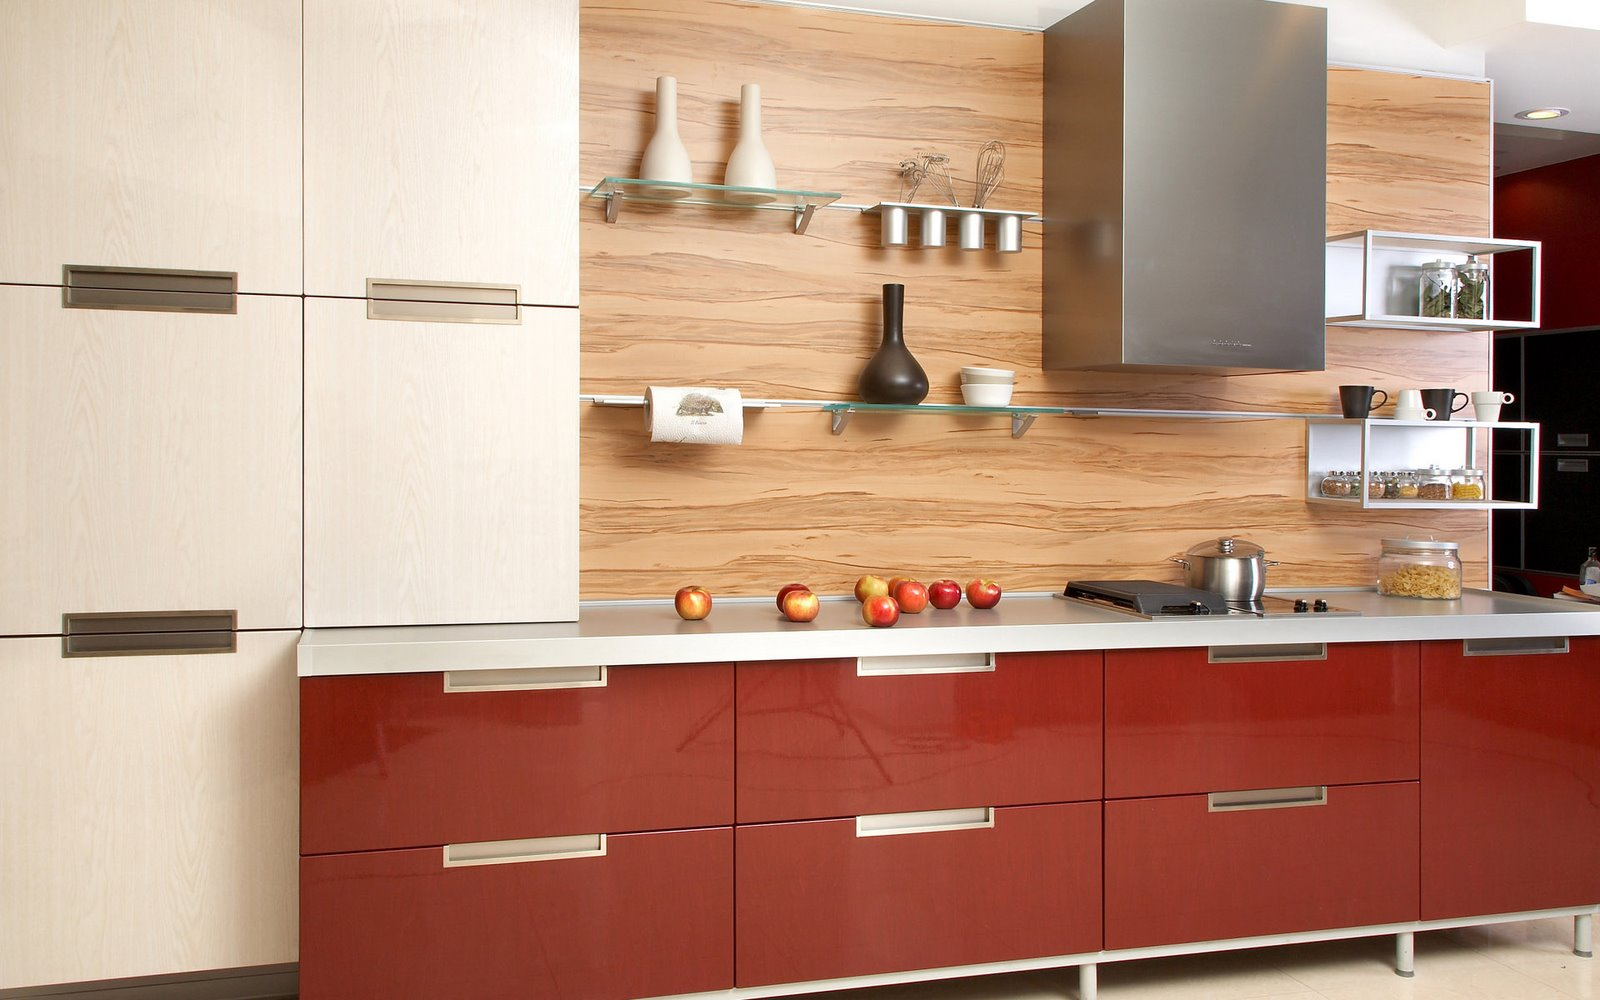 Modern Wood Kitchen Design Dream Kitchens Pinterest Kitchen Designs Kitchens And Open